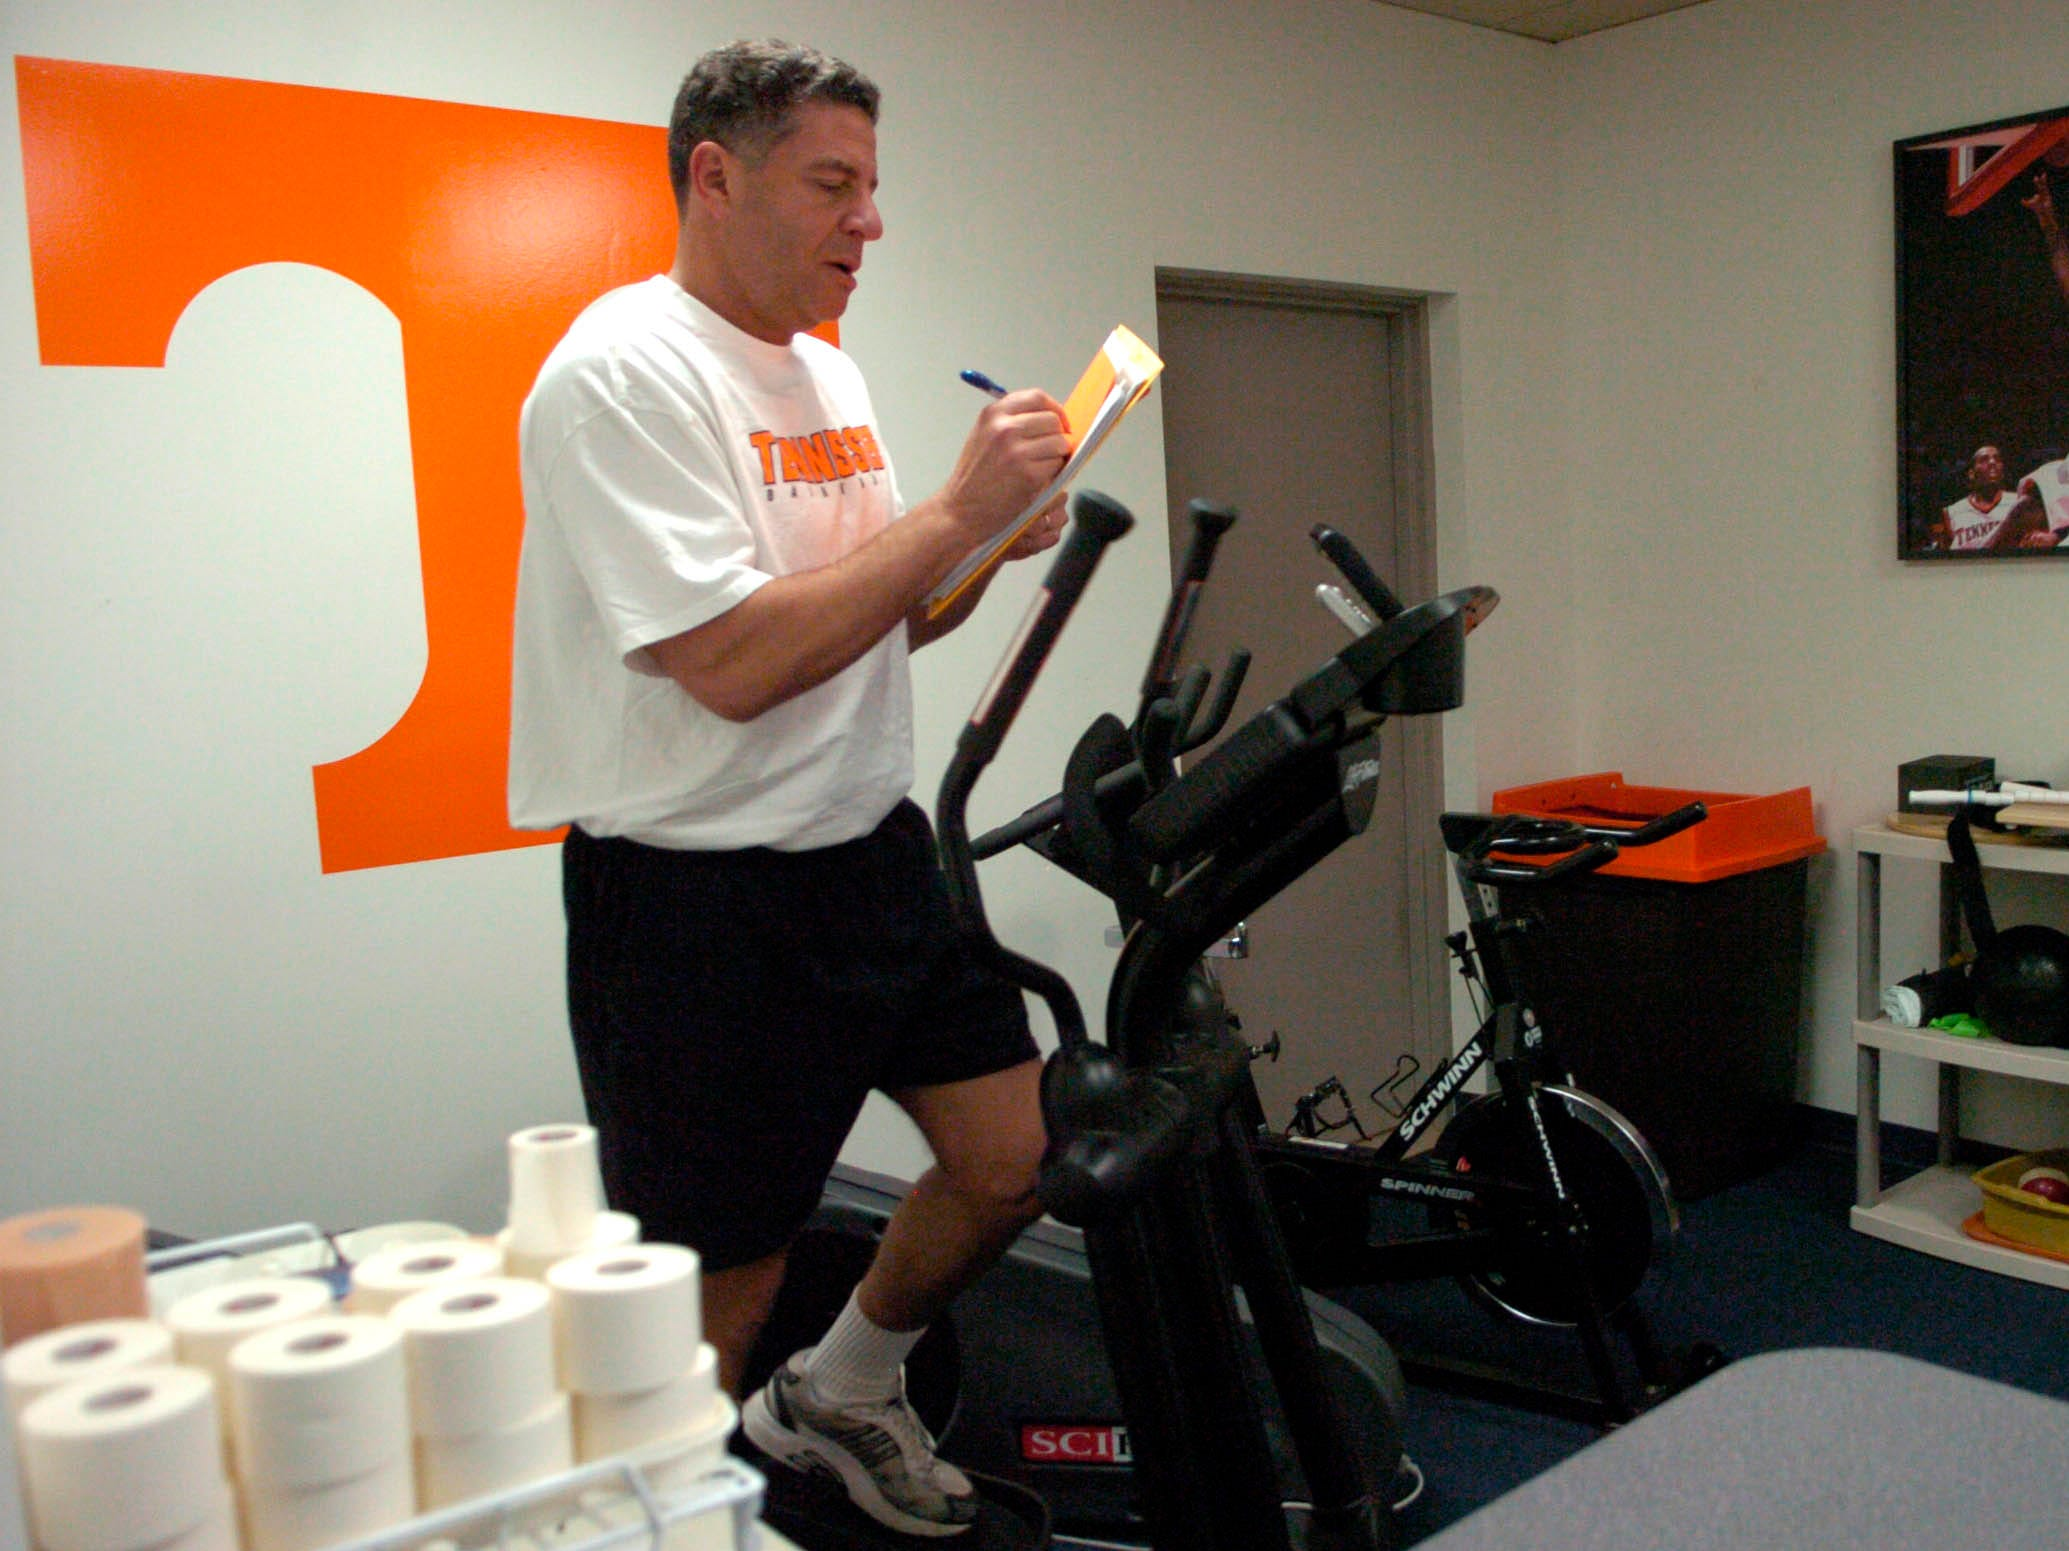 As he works out in the training room, Tennessee basketball coach Bruce Pearl takes notes while watching tape of an Auburn basketball game. 2006